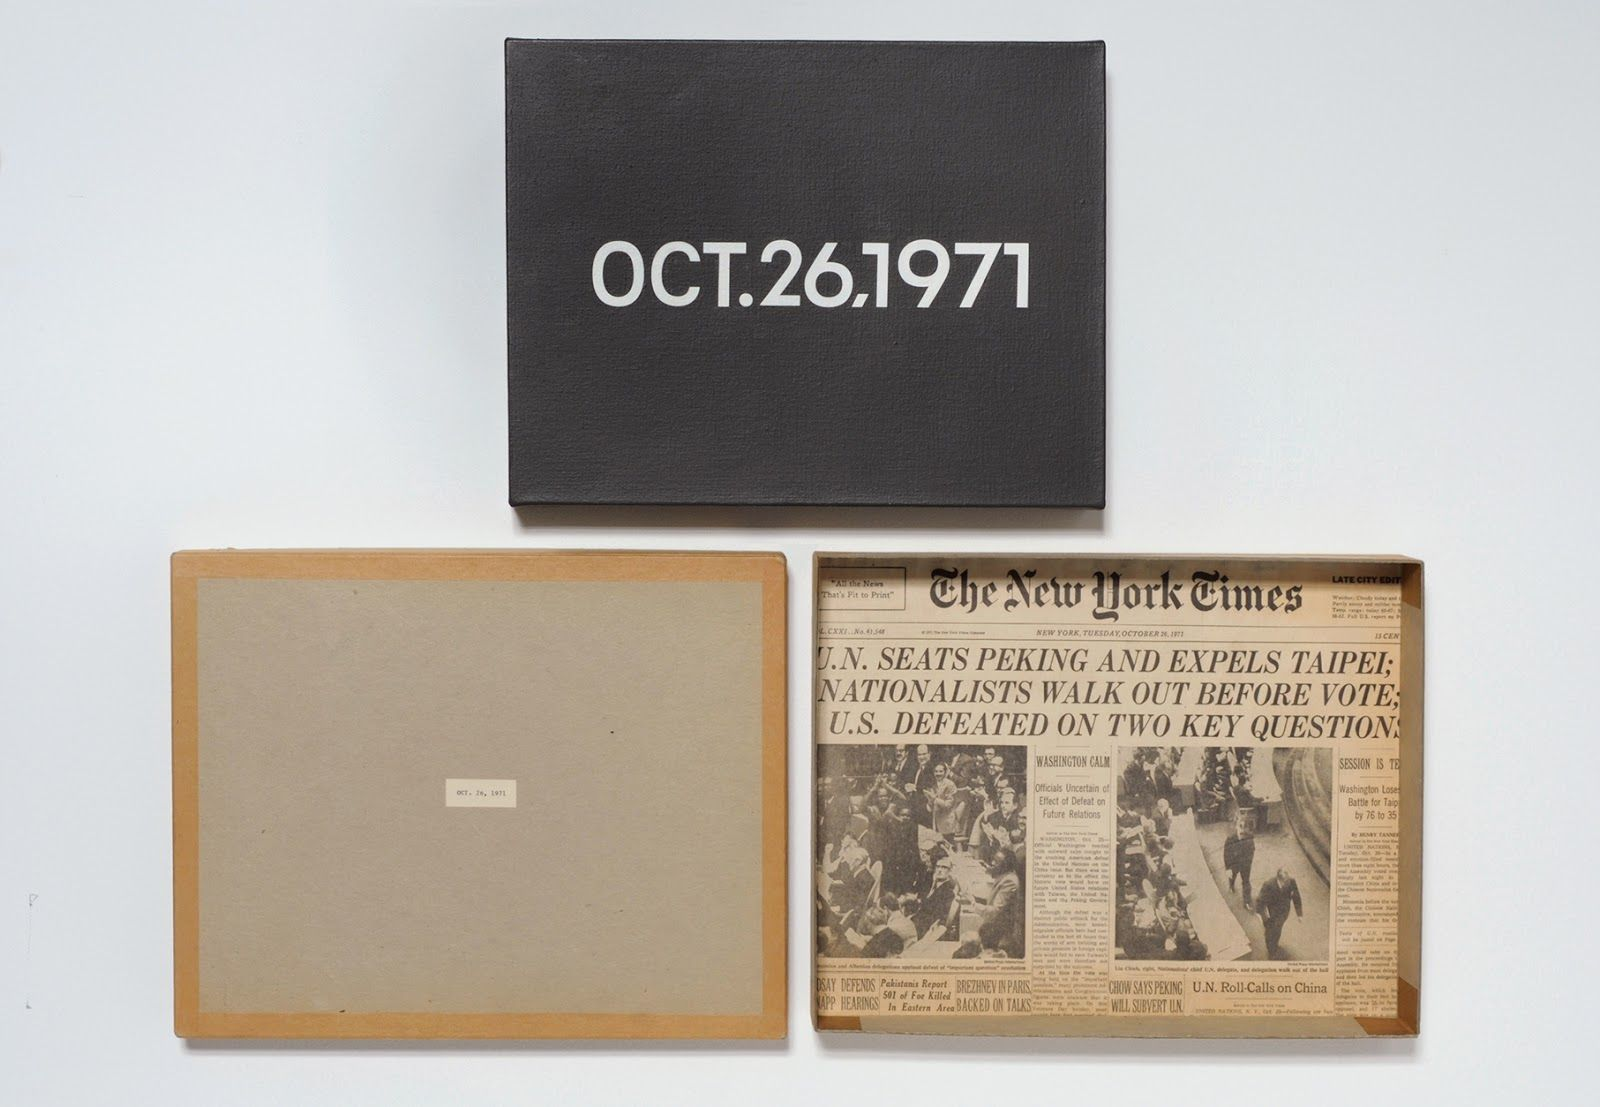 On Kawara: Date Painting, Oct.26,1971. Image courtesy of  David Zwirner .